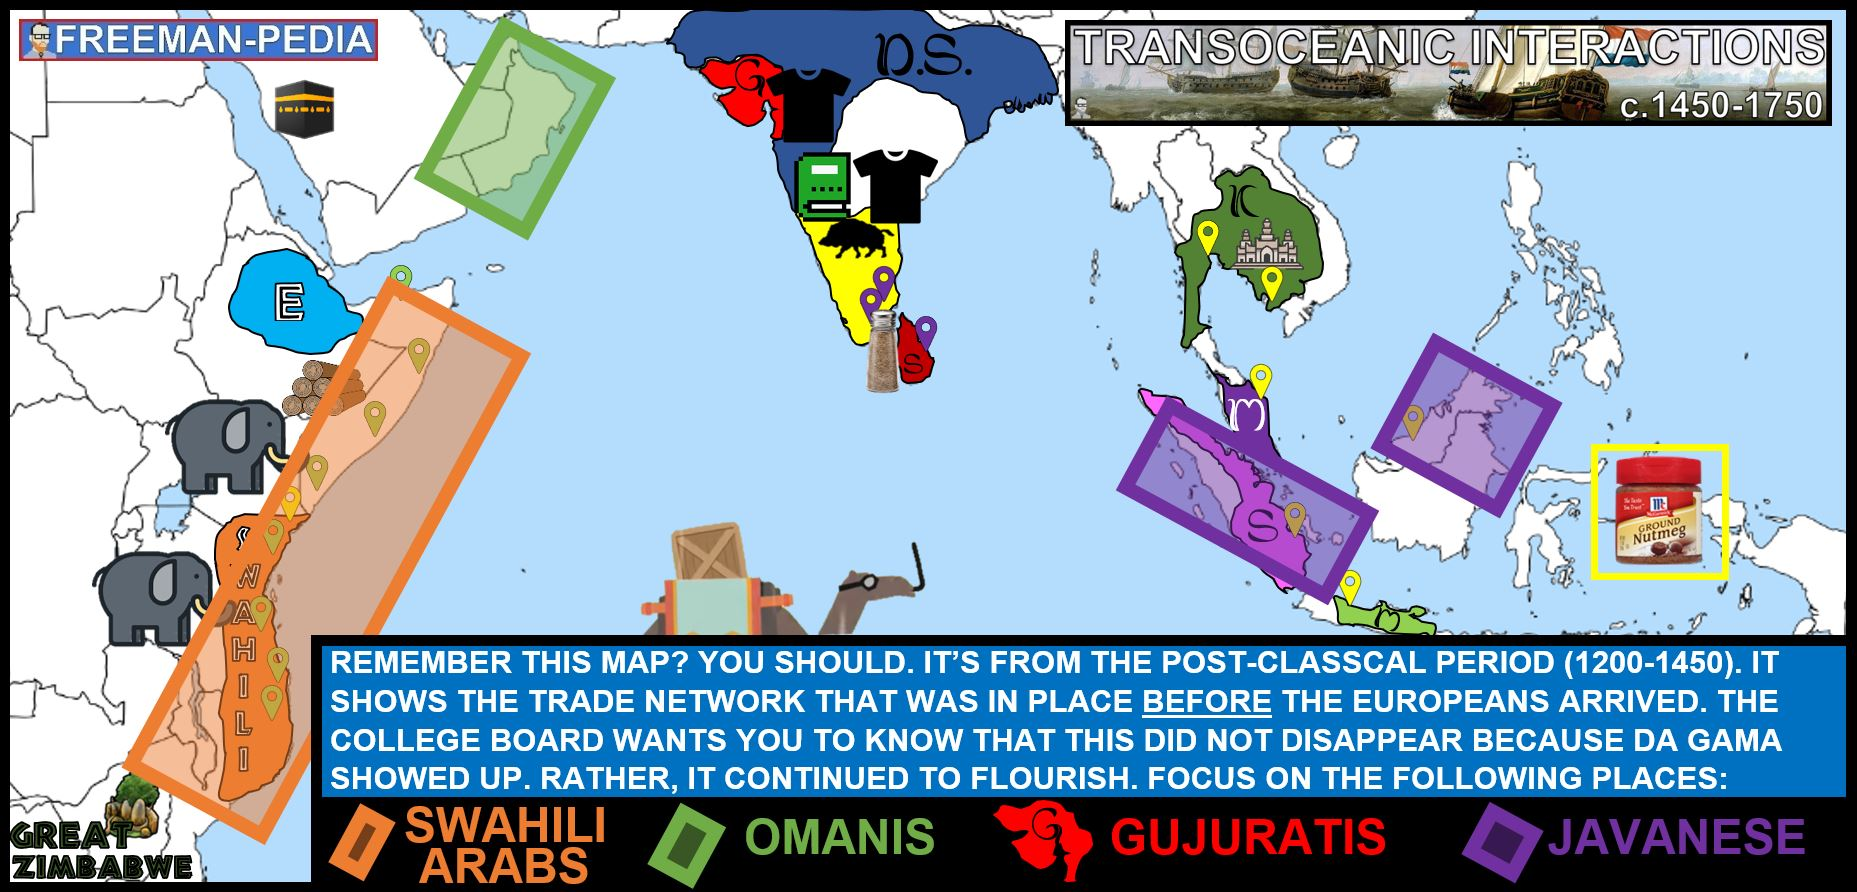 existing trade networks in the Indian Ocean continued to flourish AP WORLD HISTORY MODERN FREEMANPEDIA.JPG